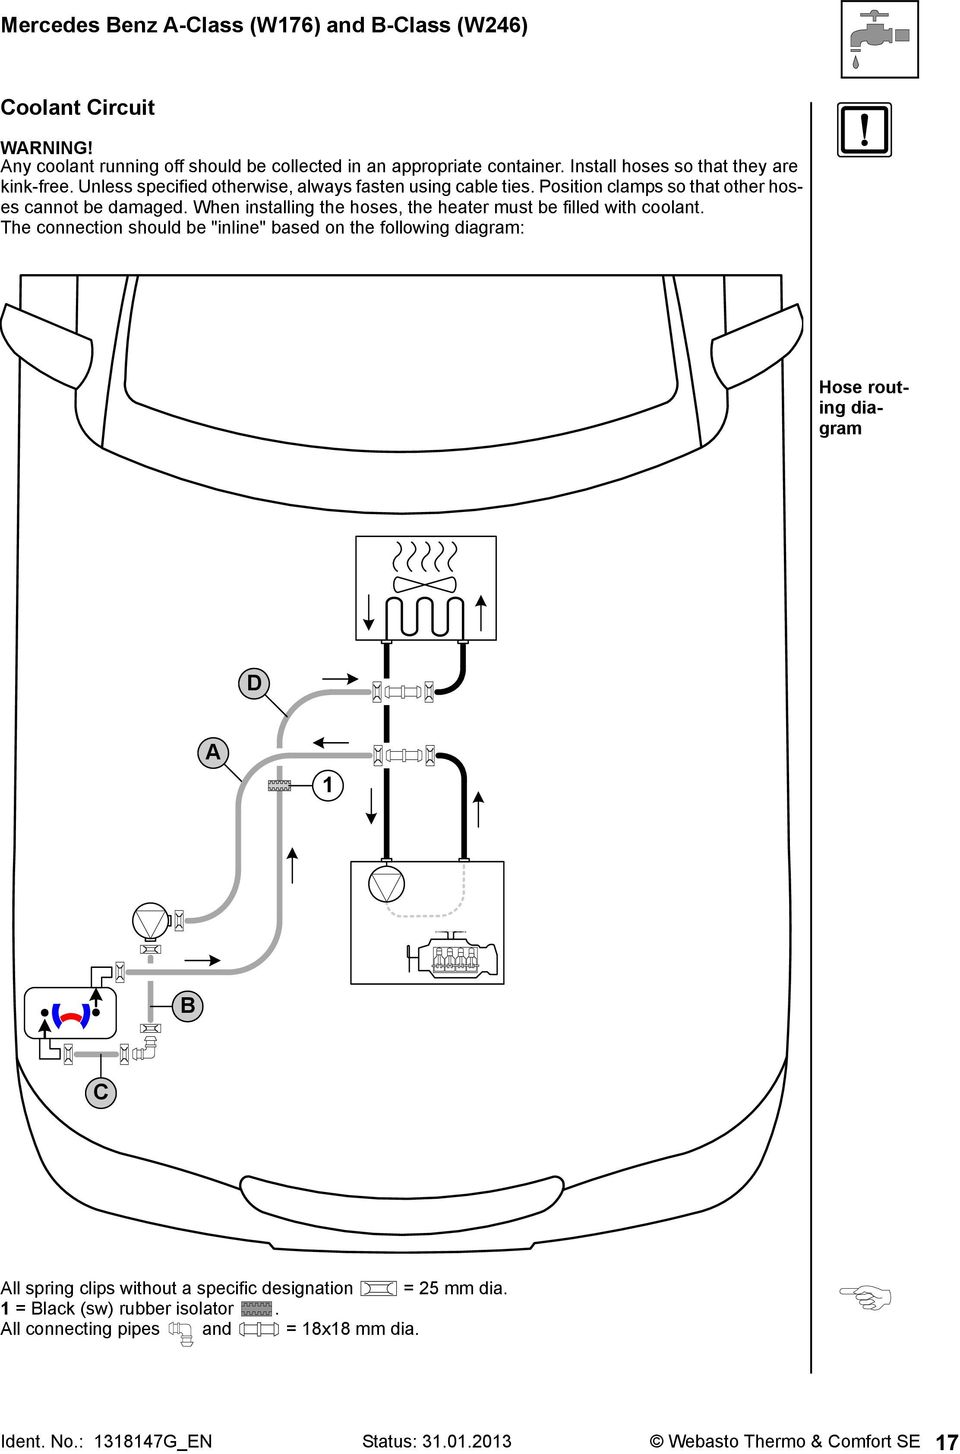 medium resolution of when installing the hoses the heater must be filled with coolant 18 mercedes benz